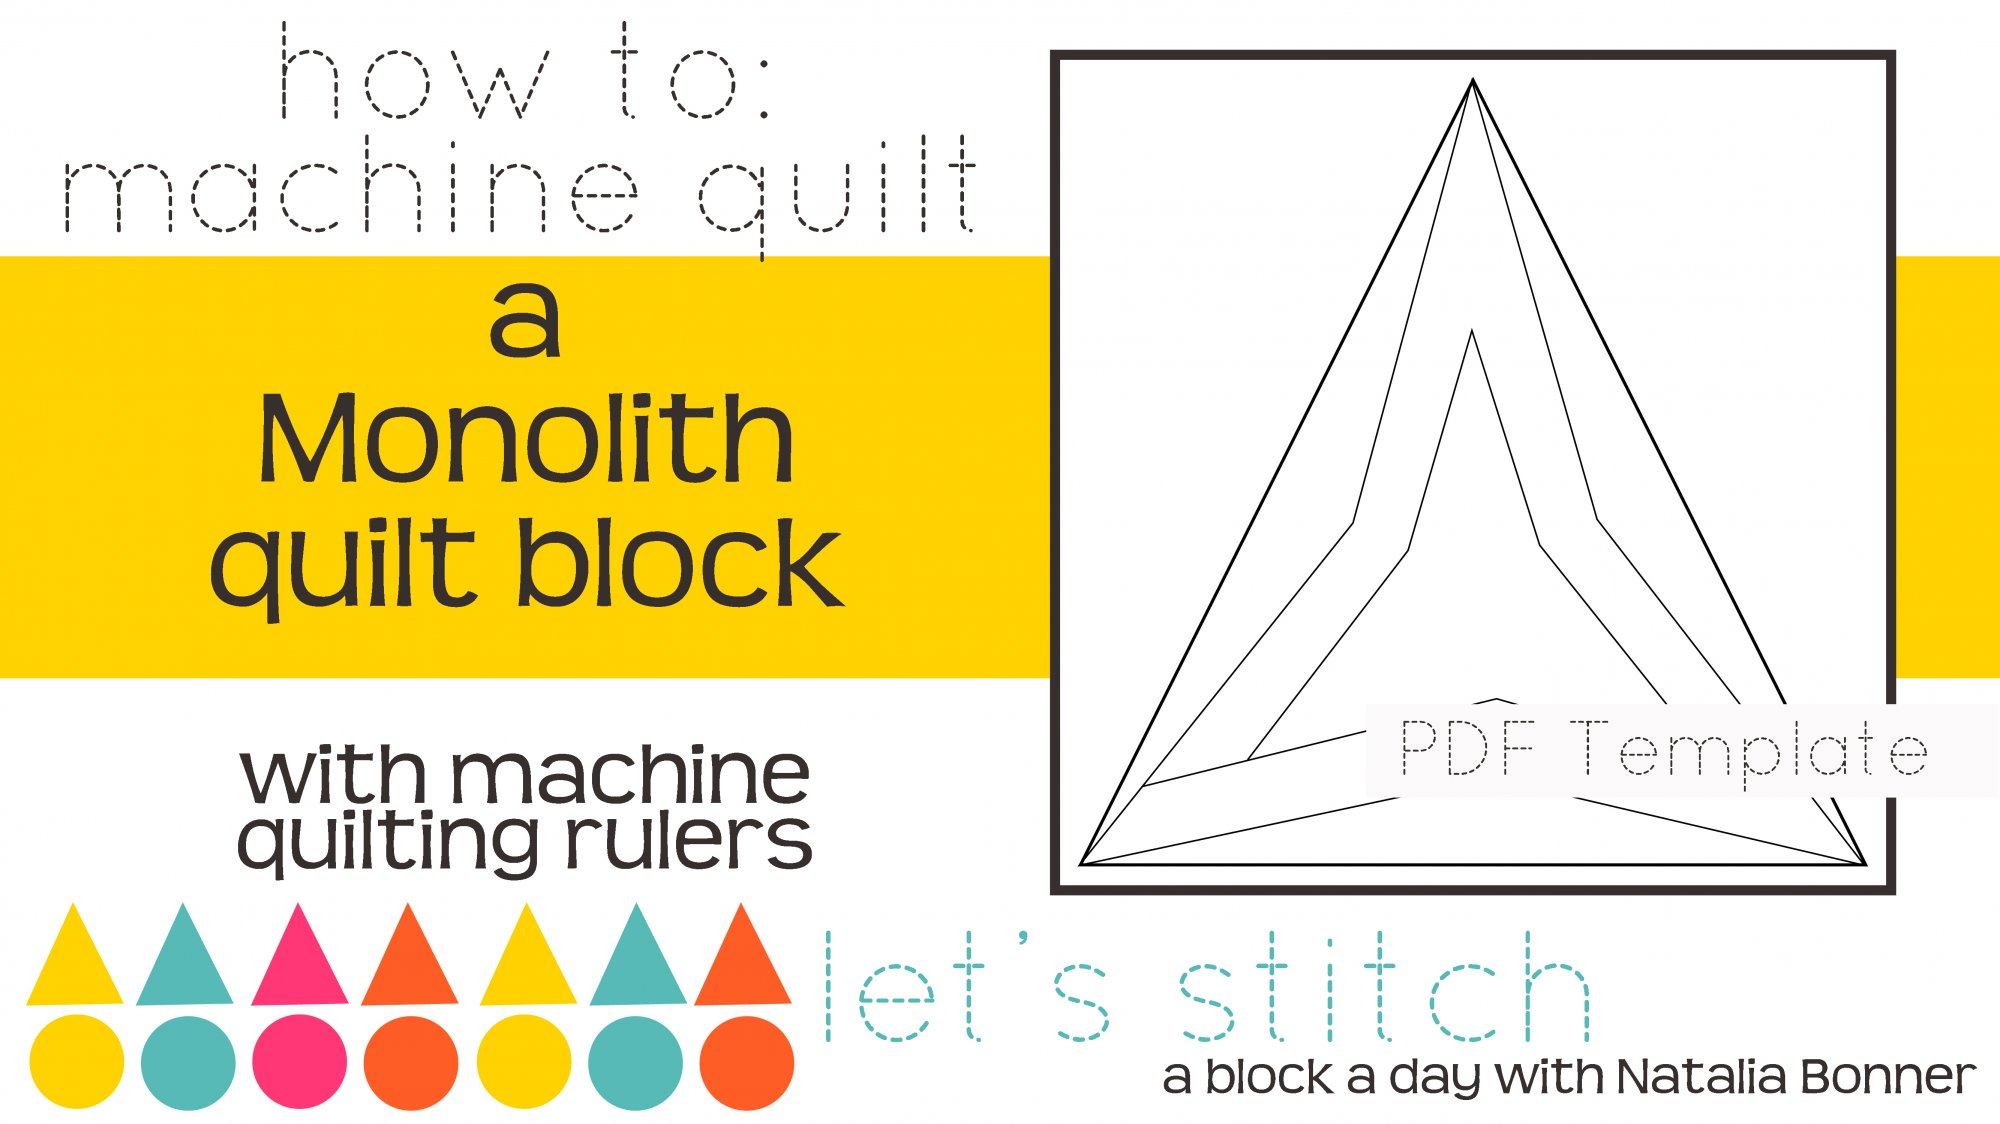 Let's Stitch - A Block a Day With Natalia Bonner - PDF - Monolith